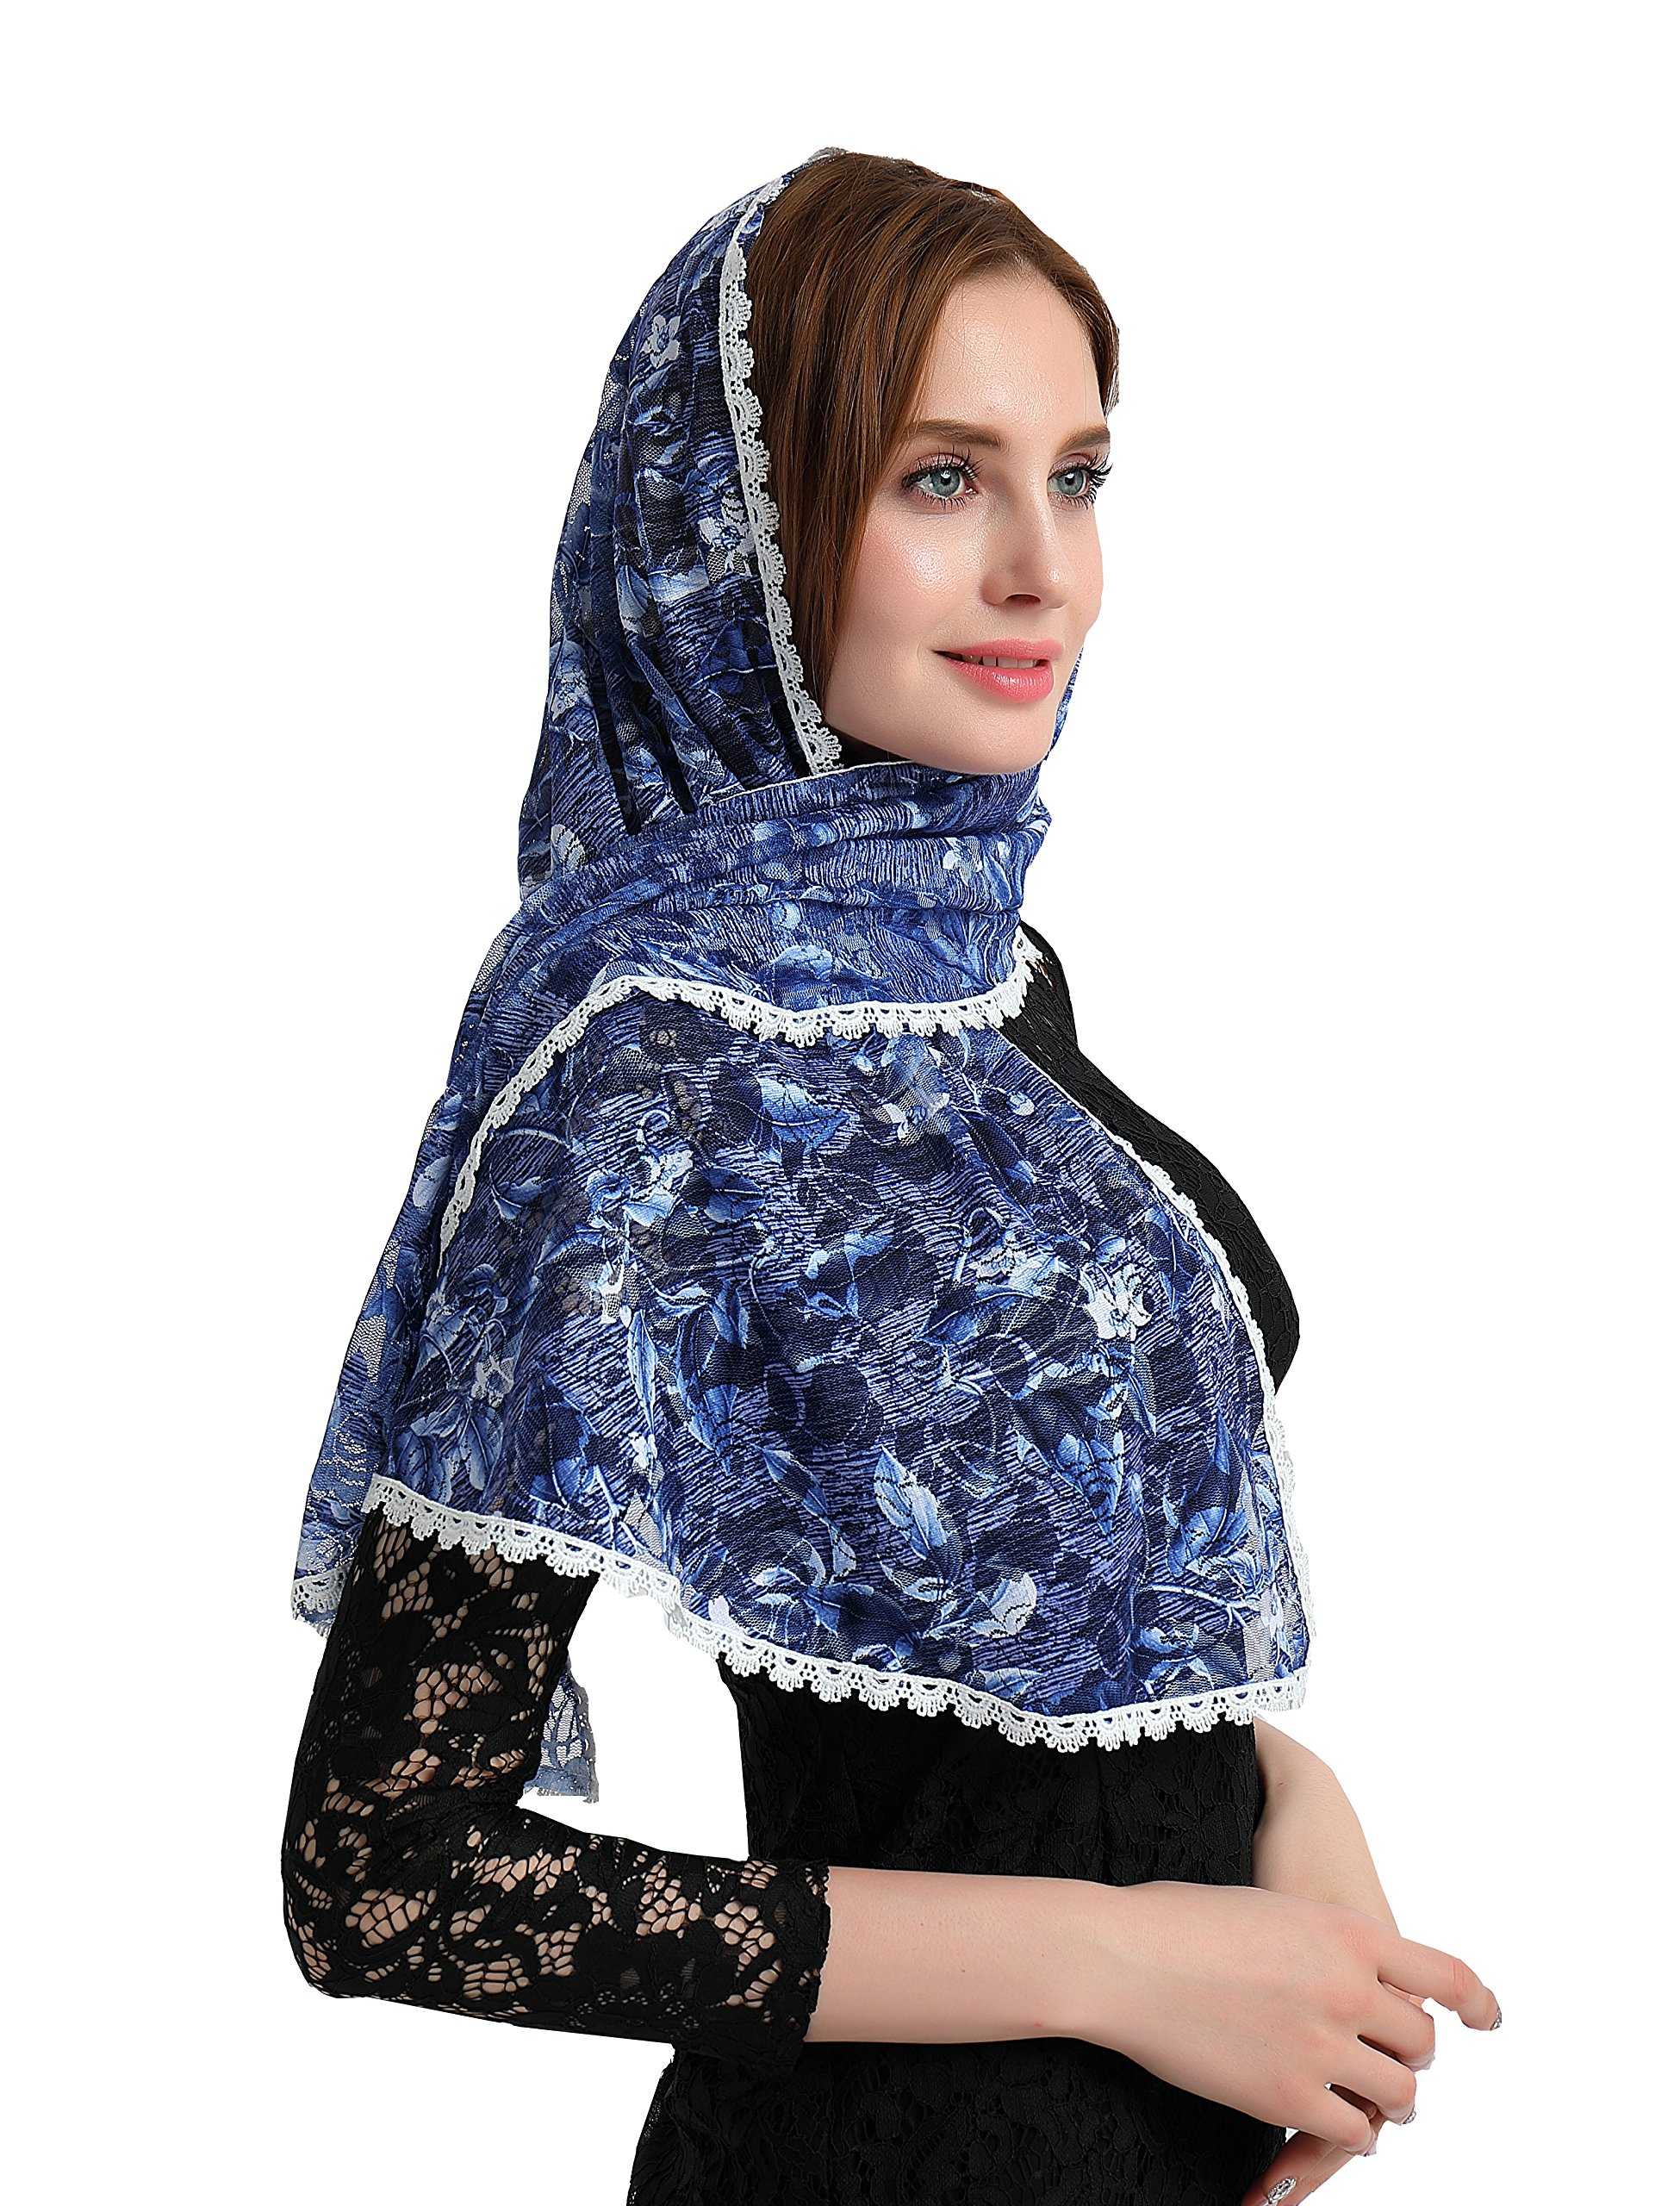 Chapel Catholic Veil lace mantilla for church headwrap V33 (Navy)